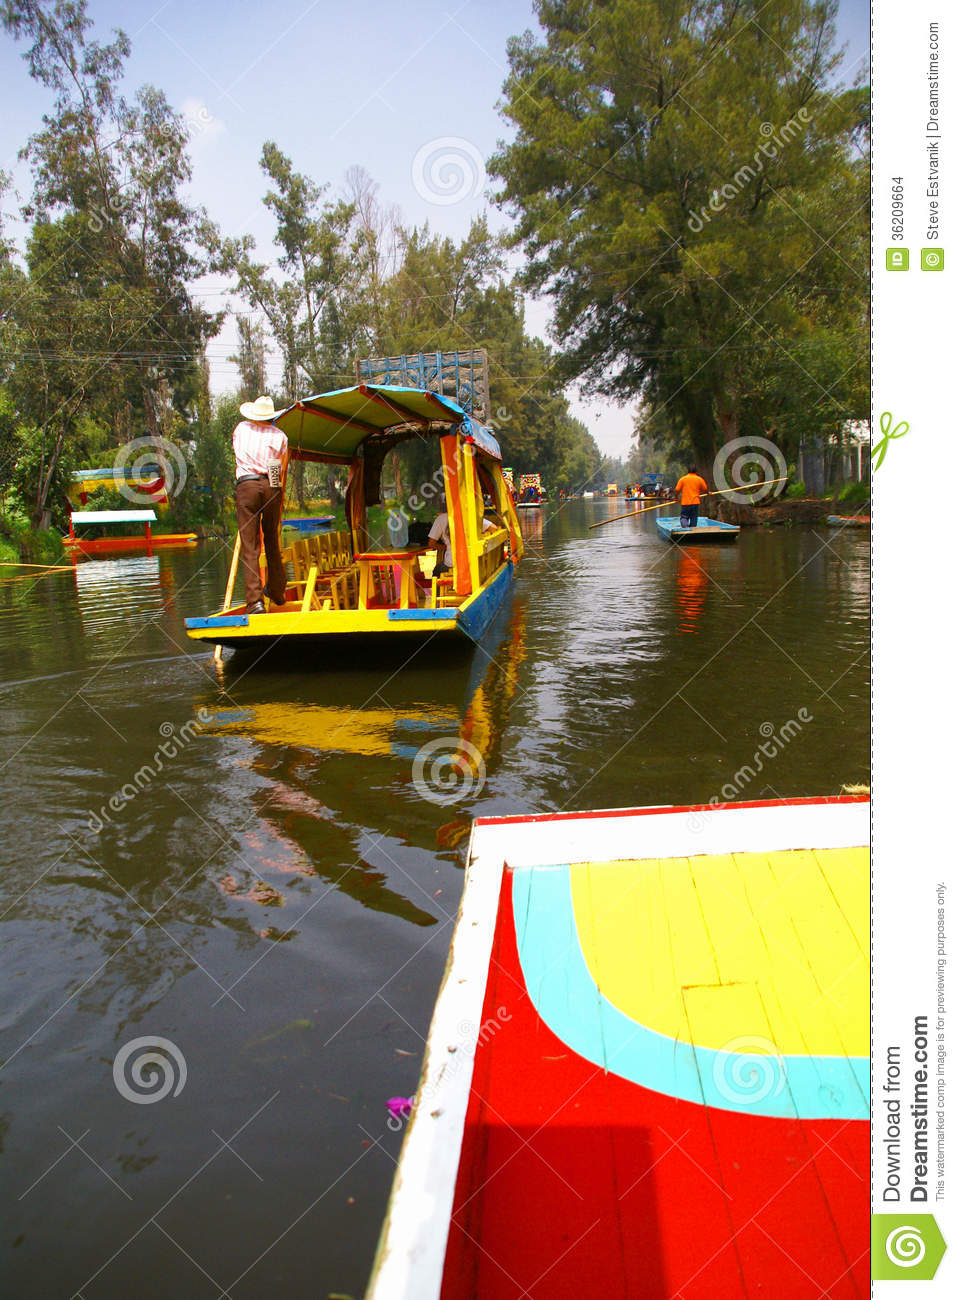 Boatman Poling Brightly Colored Boat Stock Photo - Image of mexican ...